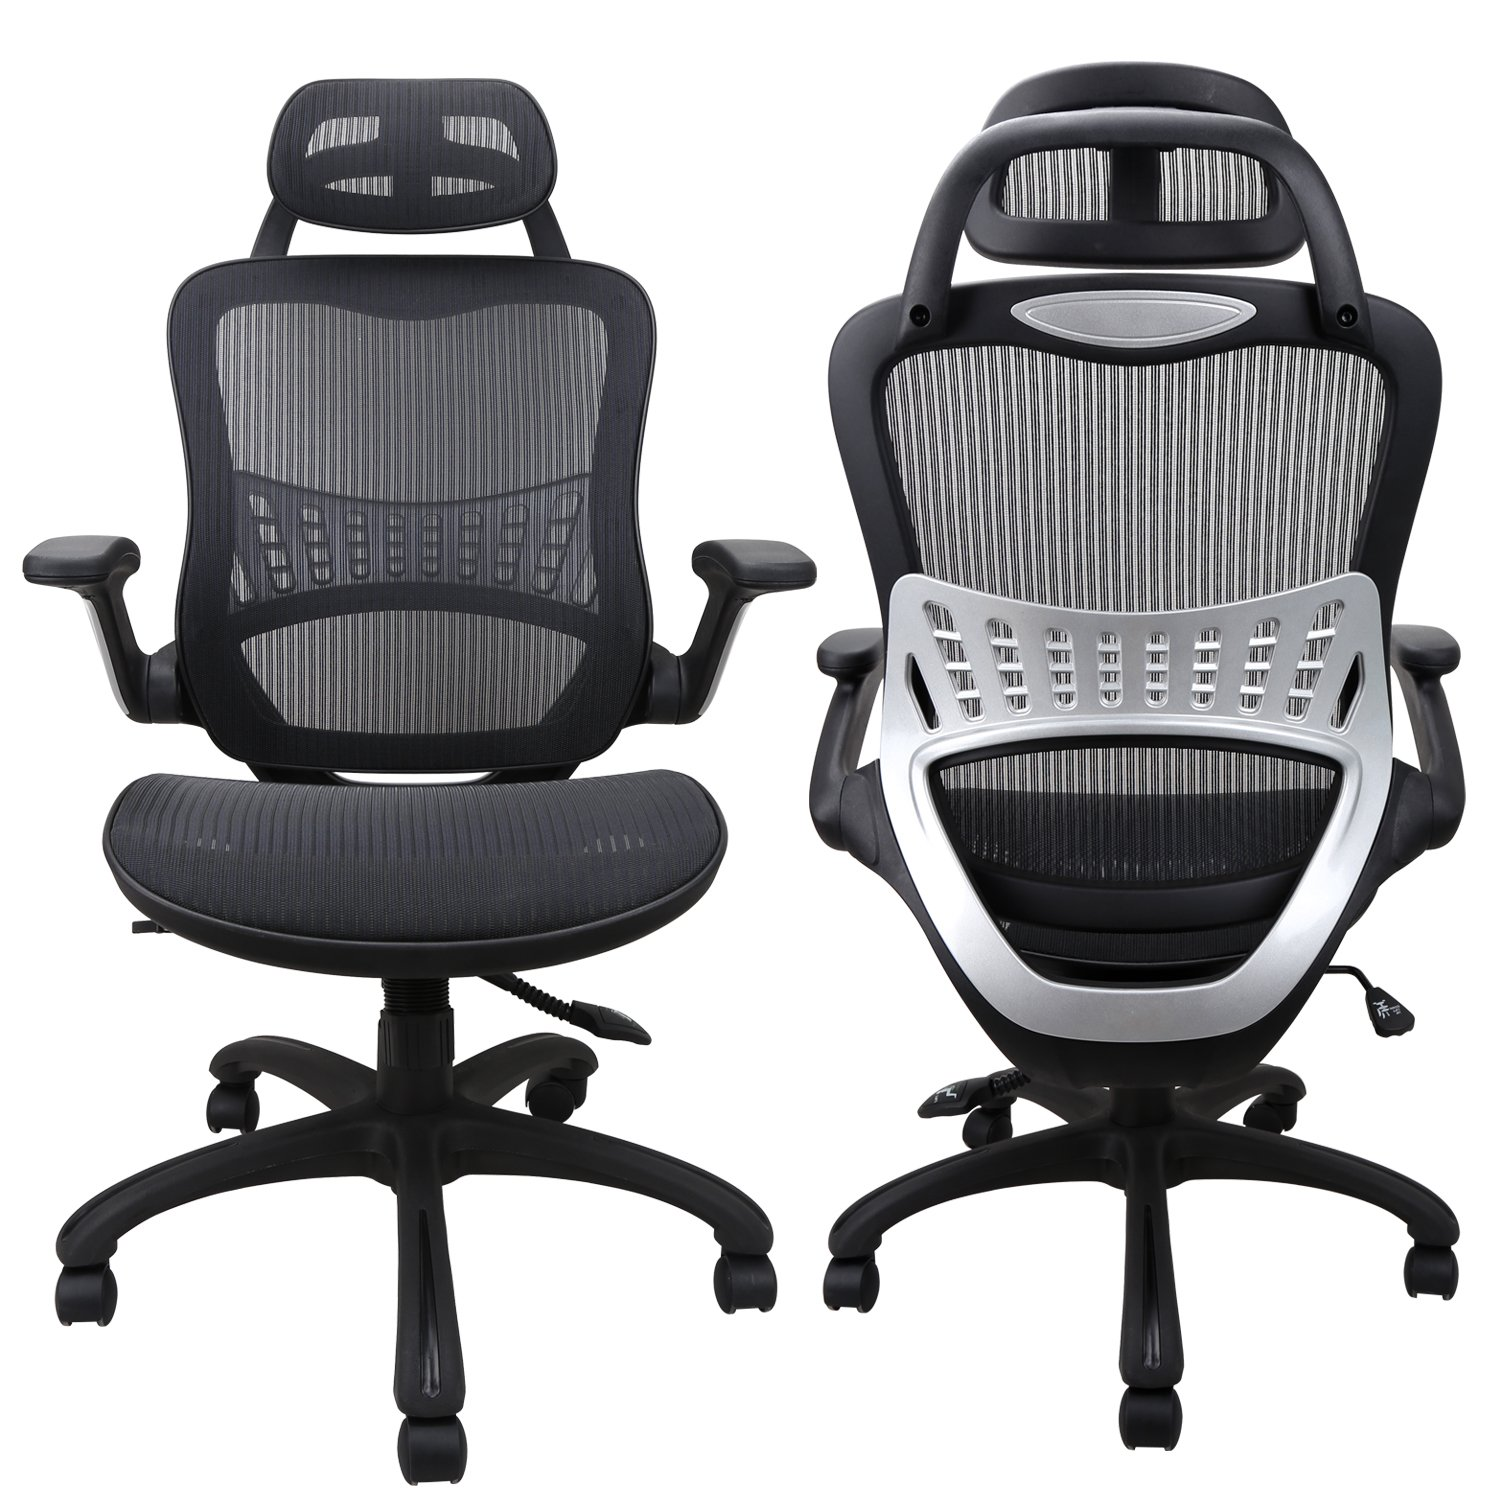 Komene Ergonomic Chairs for Office &Home: Passed BIFMA/SGS Weight Support Over 300Ibs,The Most Comfortable Mesh Cushion&High Back-Adjustable Headrest Backrest,Flip-up Armrests,360-Degree Swivel Chairs by Komene (Image #1)